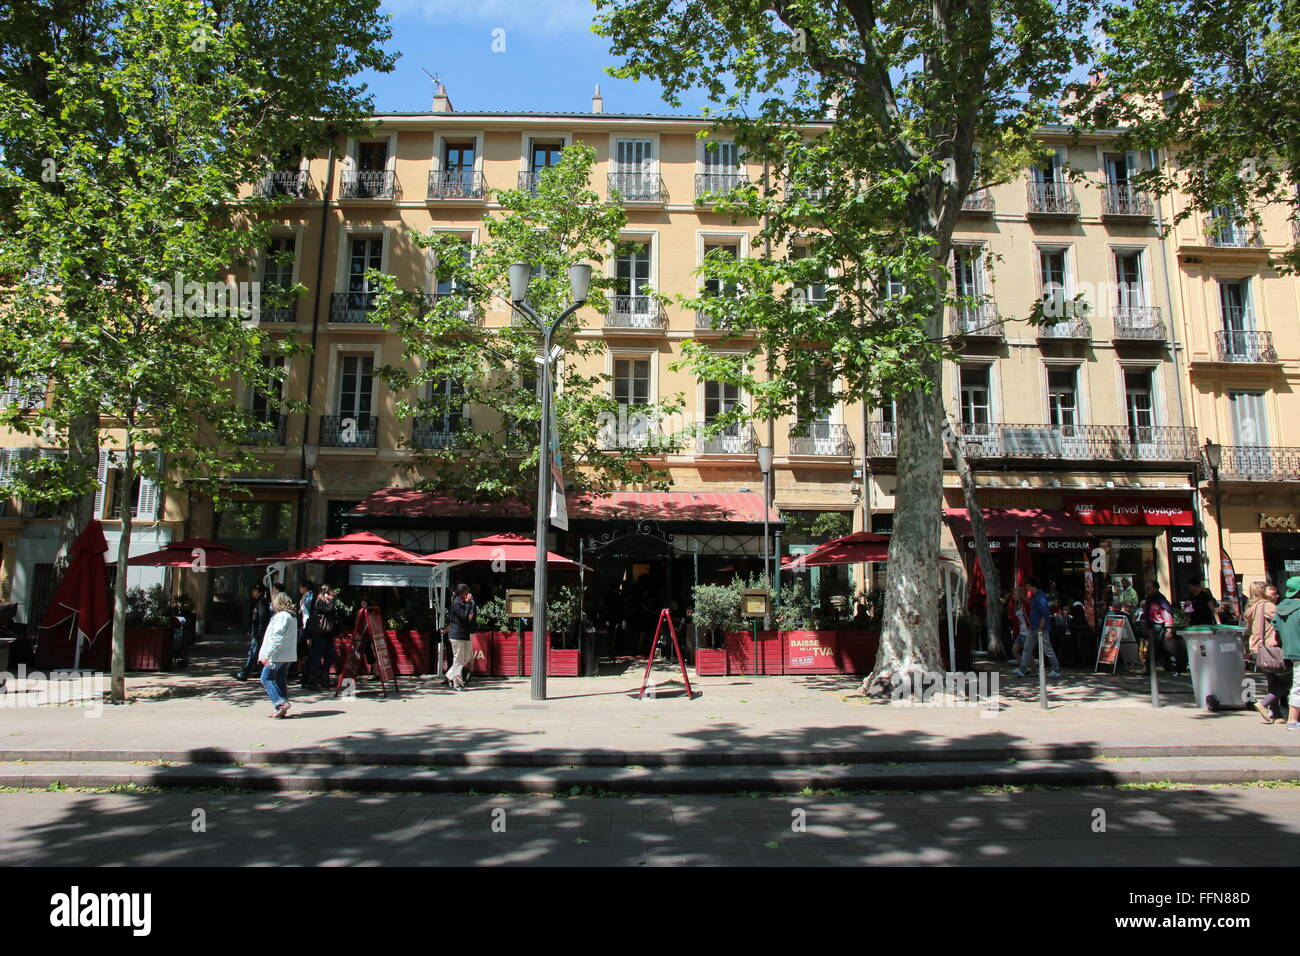 Géographie / voyages, France, Aix-en-Provence, café sur le Cours Mirabeau, , Additional-Rights Clearance Photo Stock